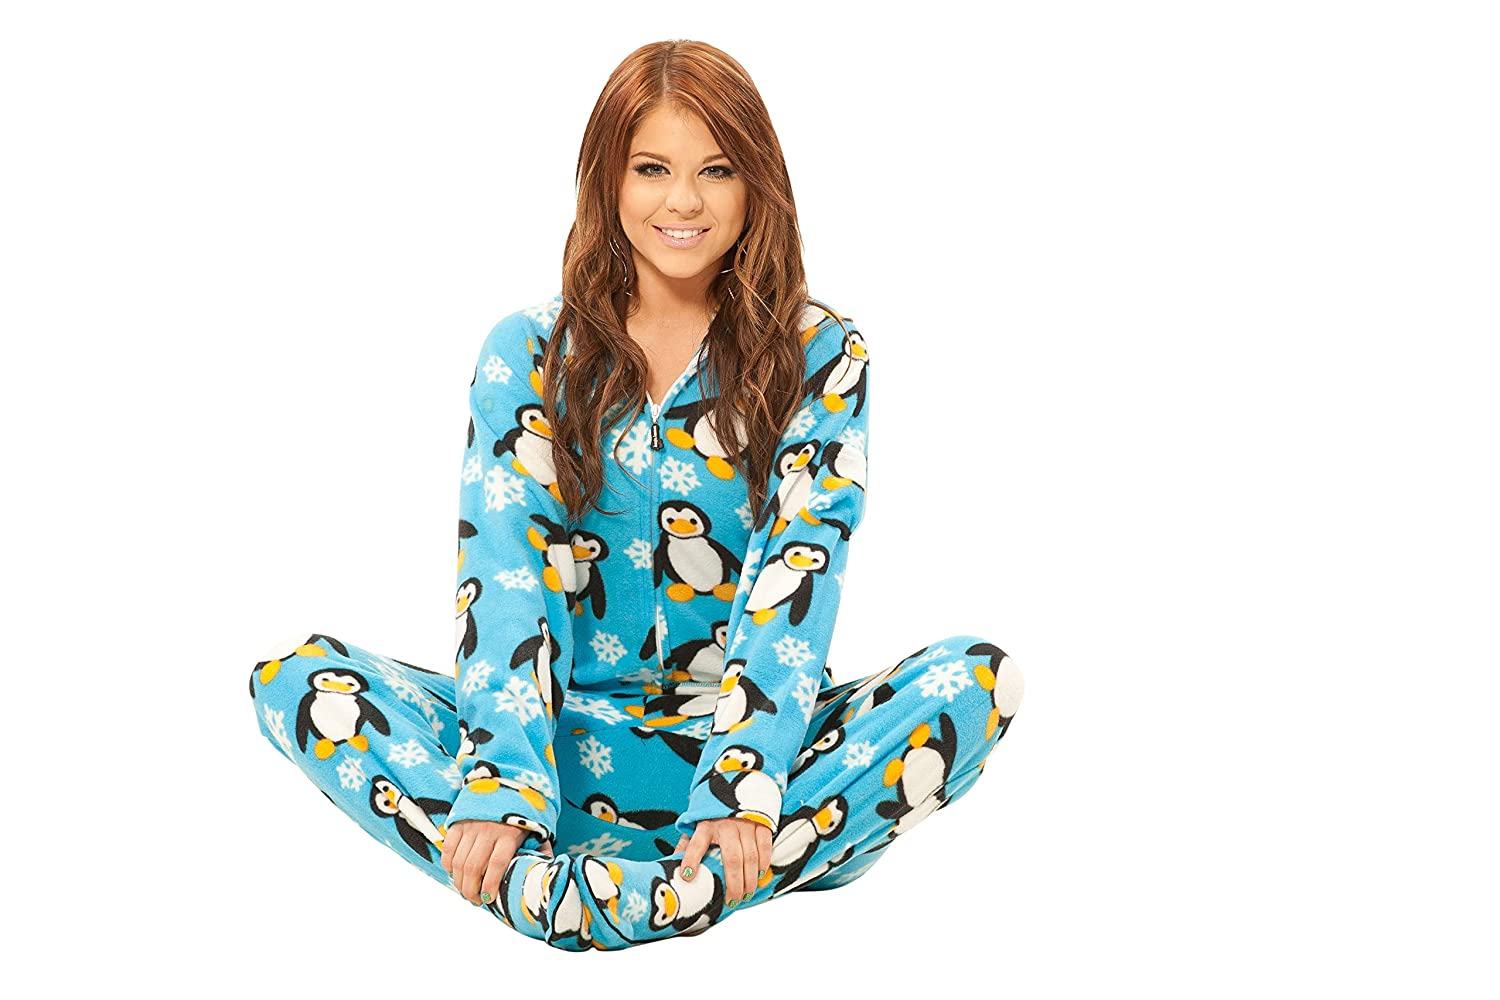 Jumpin Jammerz Penguins Holiday Blue Adult Footed Onesie Unisex Pajamas for Men Women Teens